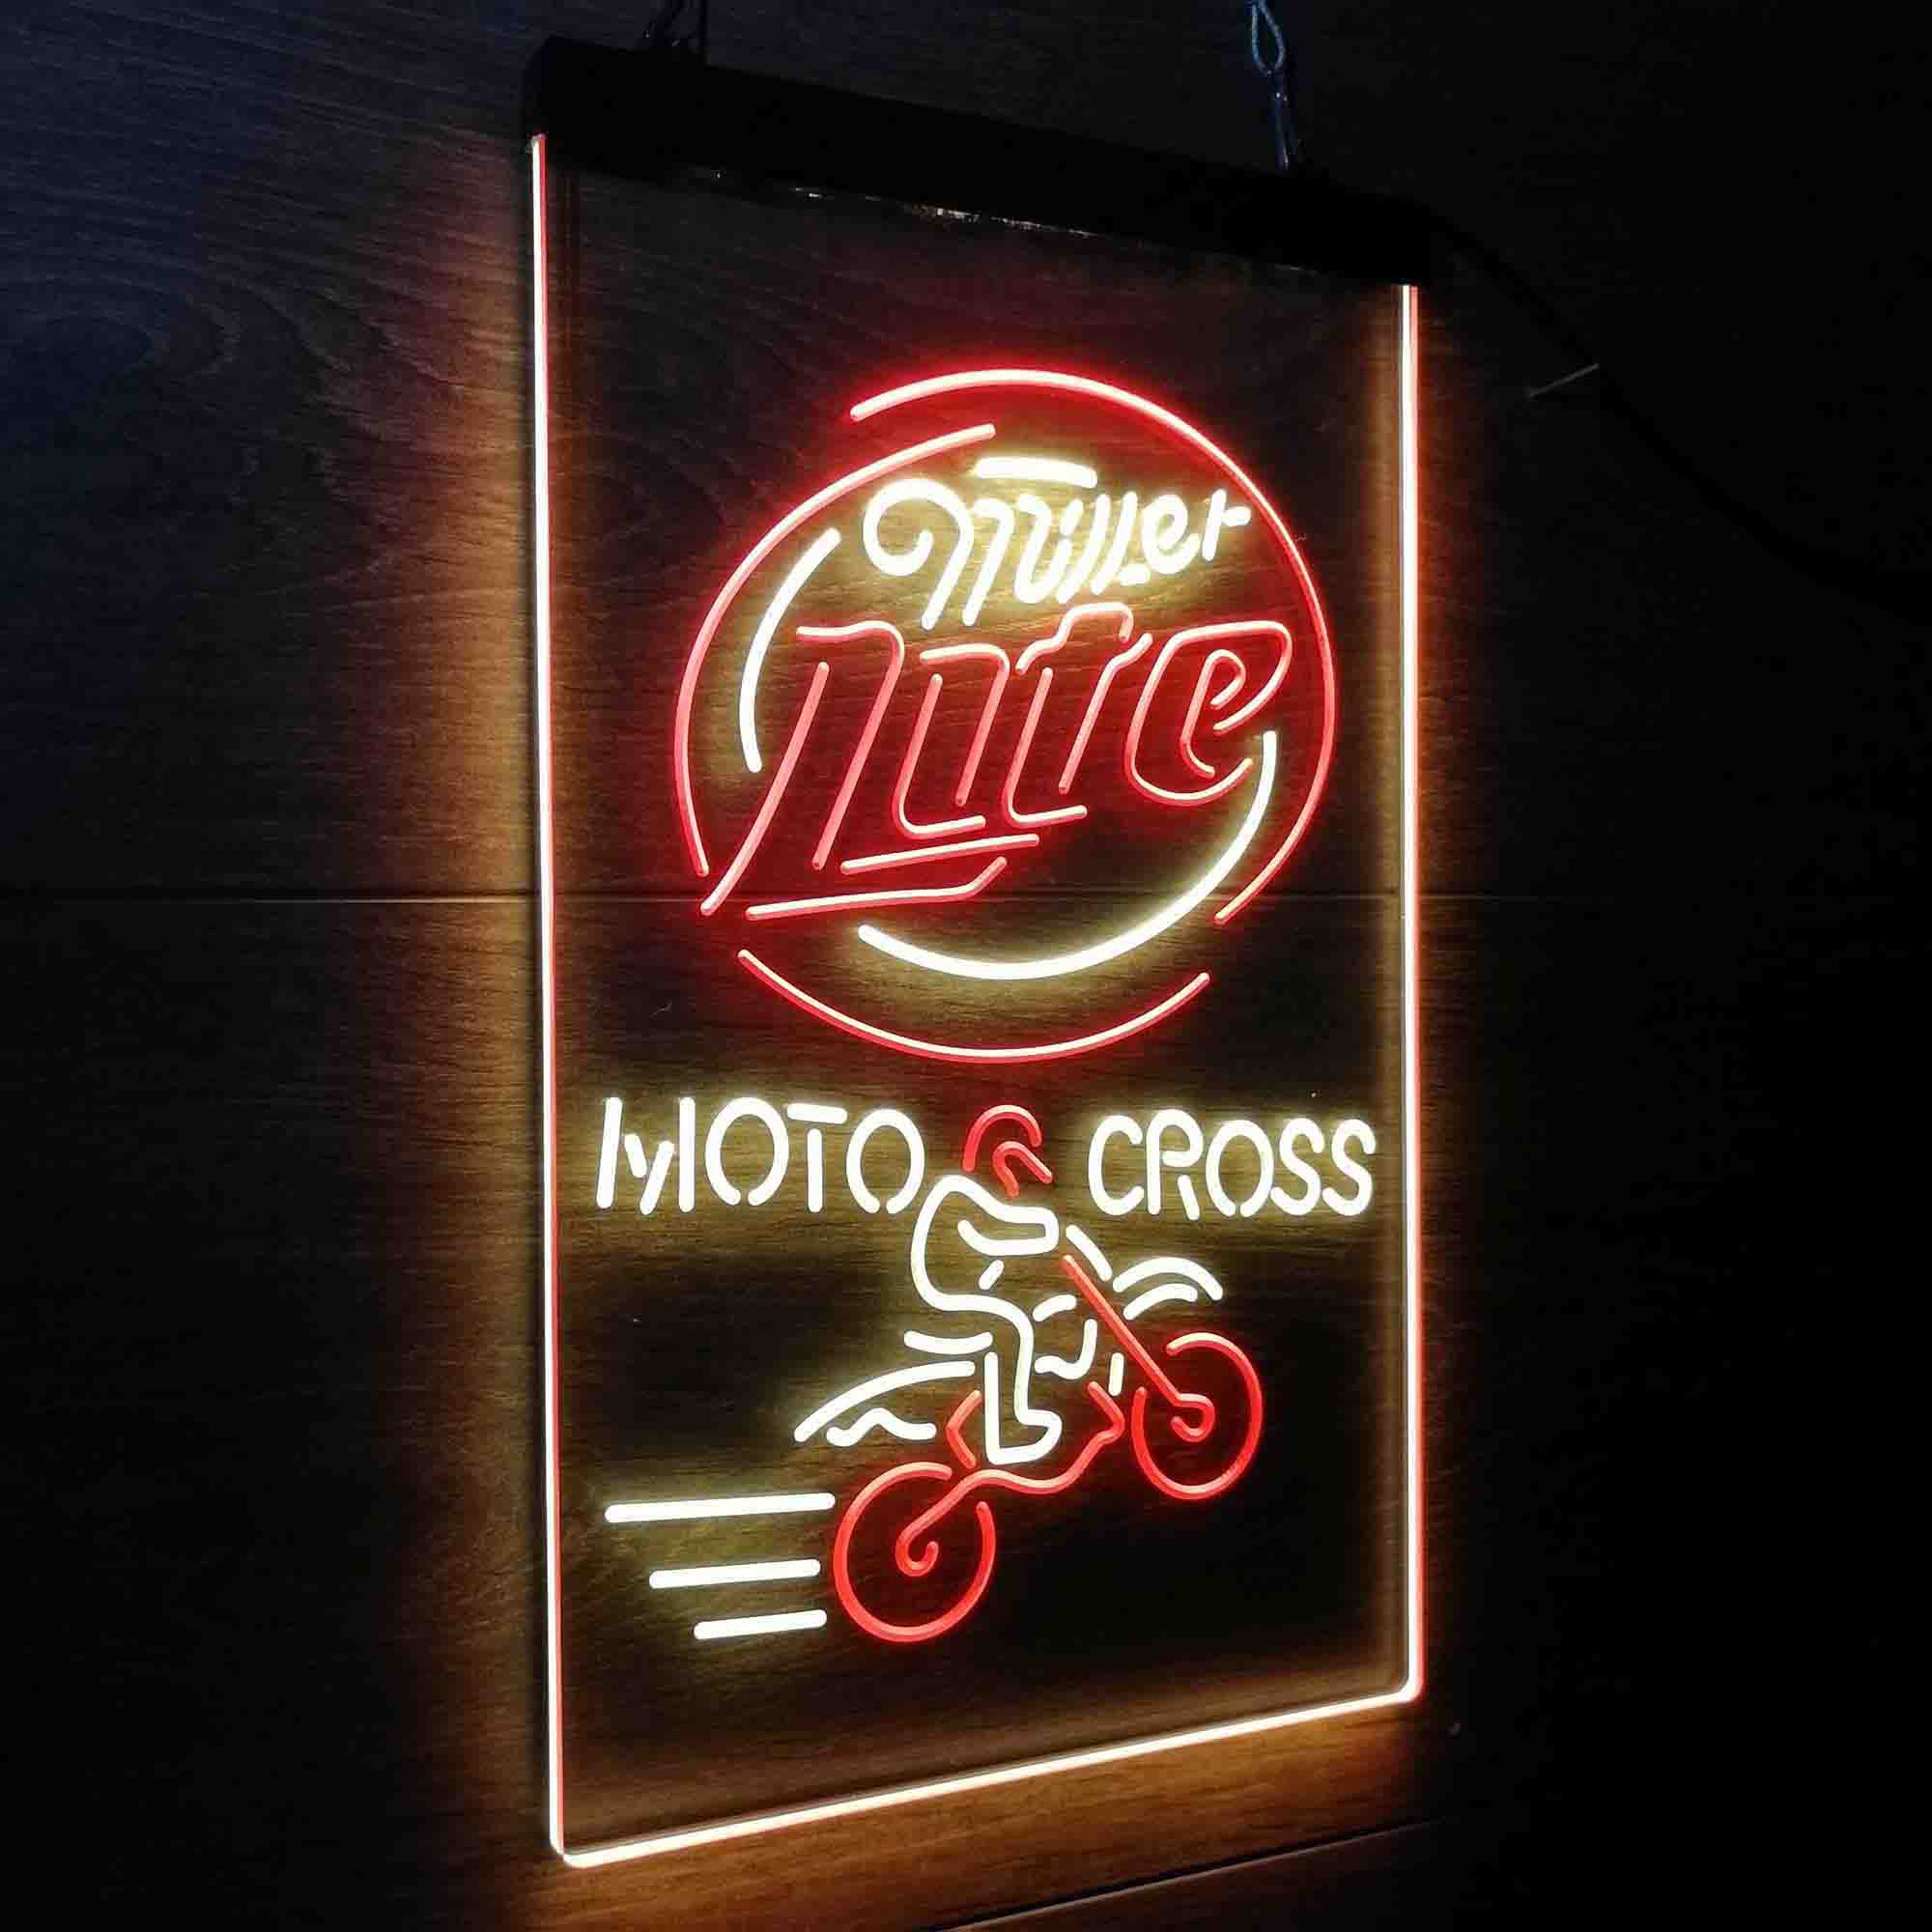 Miller Lite Moto Cross Motor Bike Sport Neon-Like LED Sign